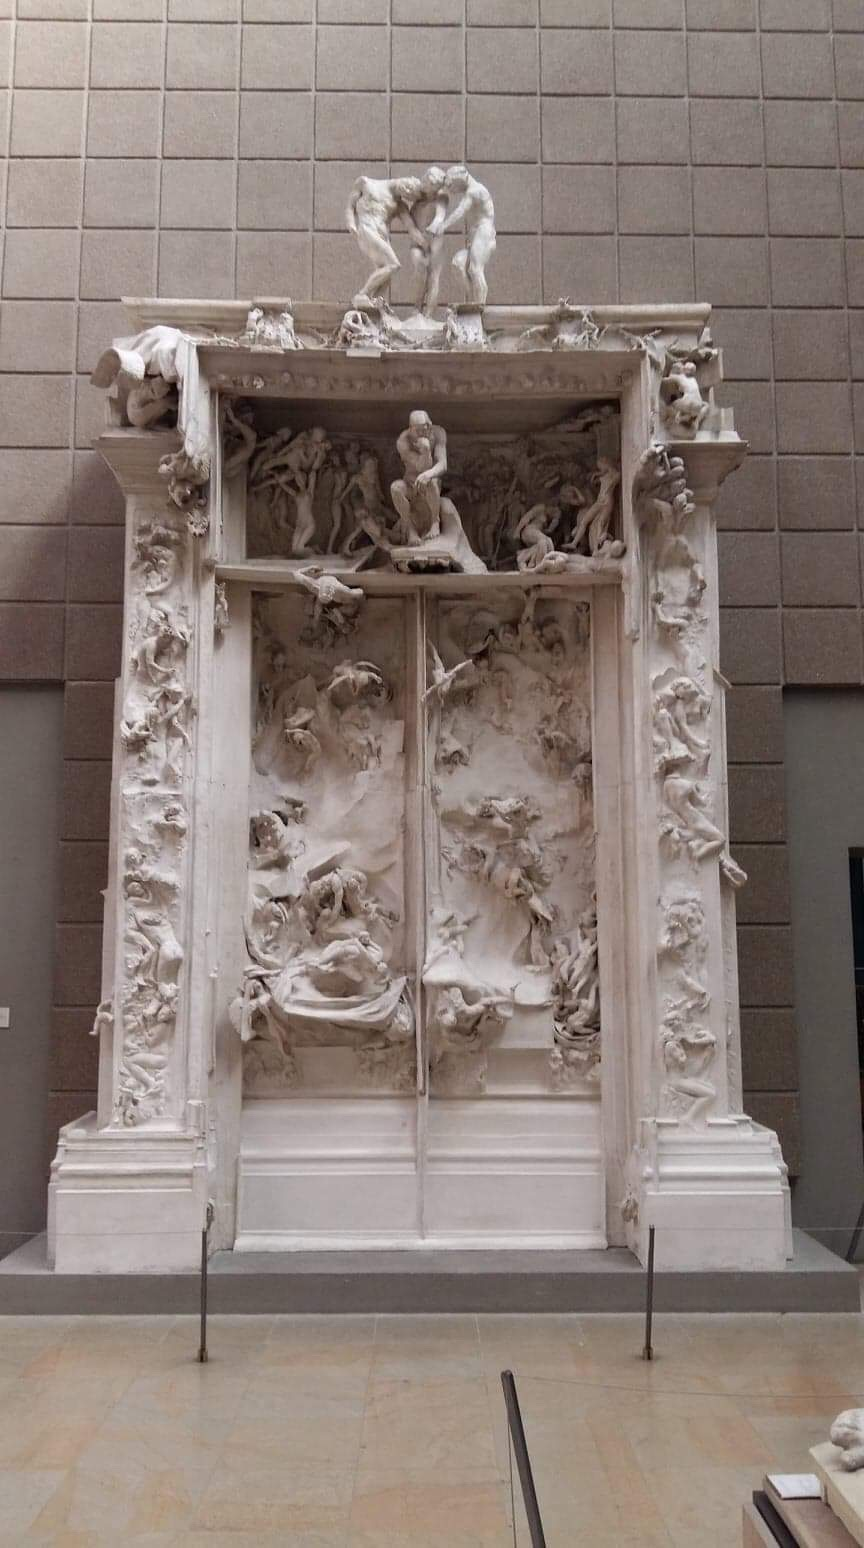 Gate of Hell in the Musée d'Orsay in Paris